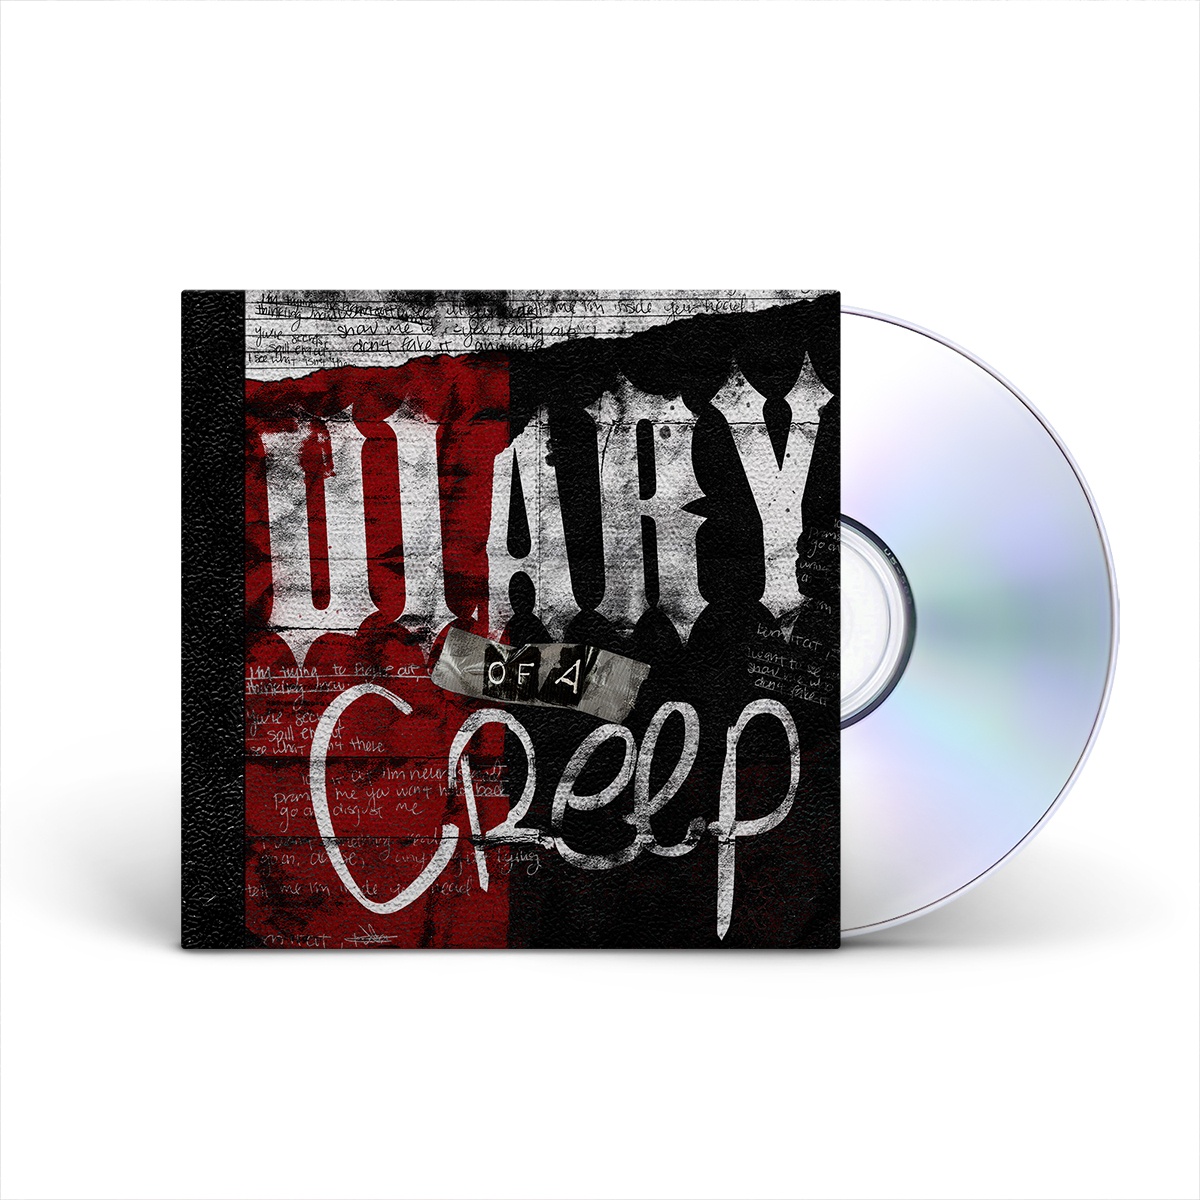 New Years Day: Diary of A Creep  CD